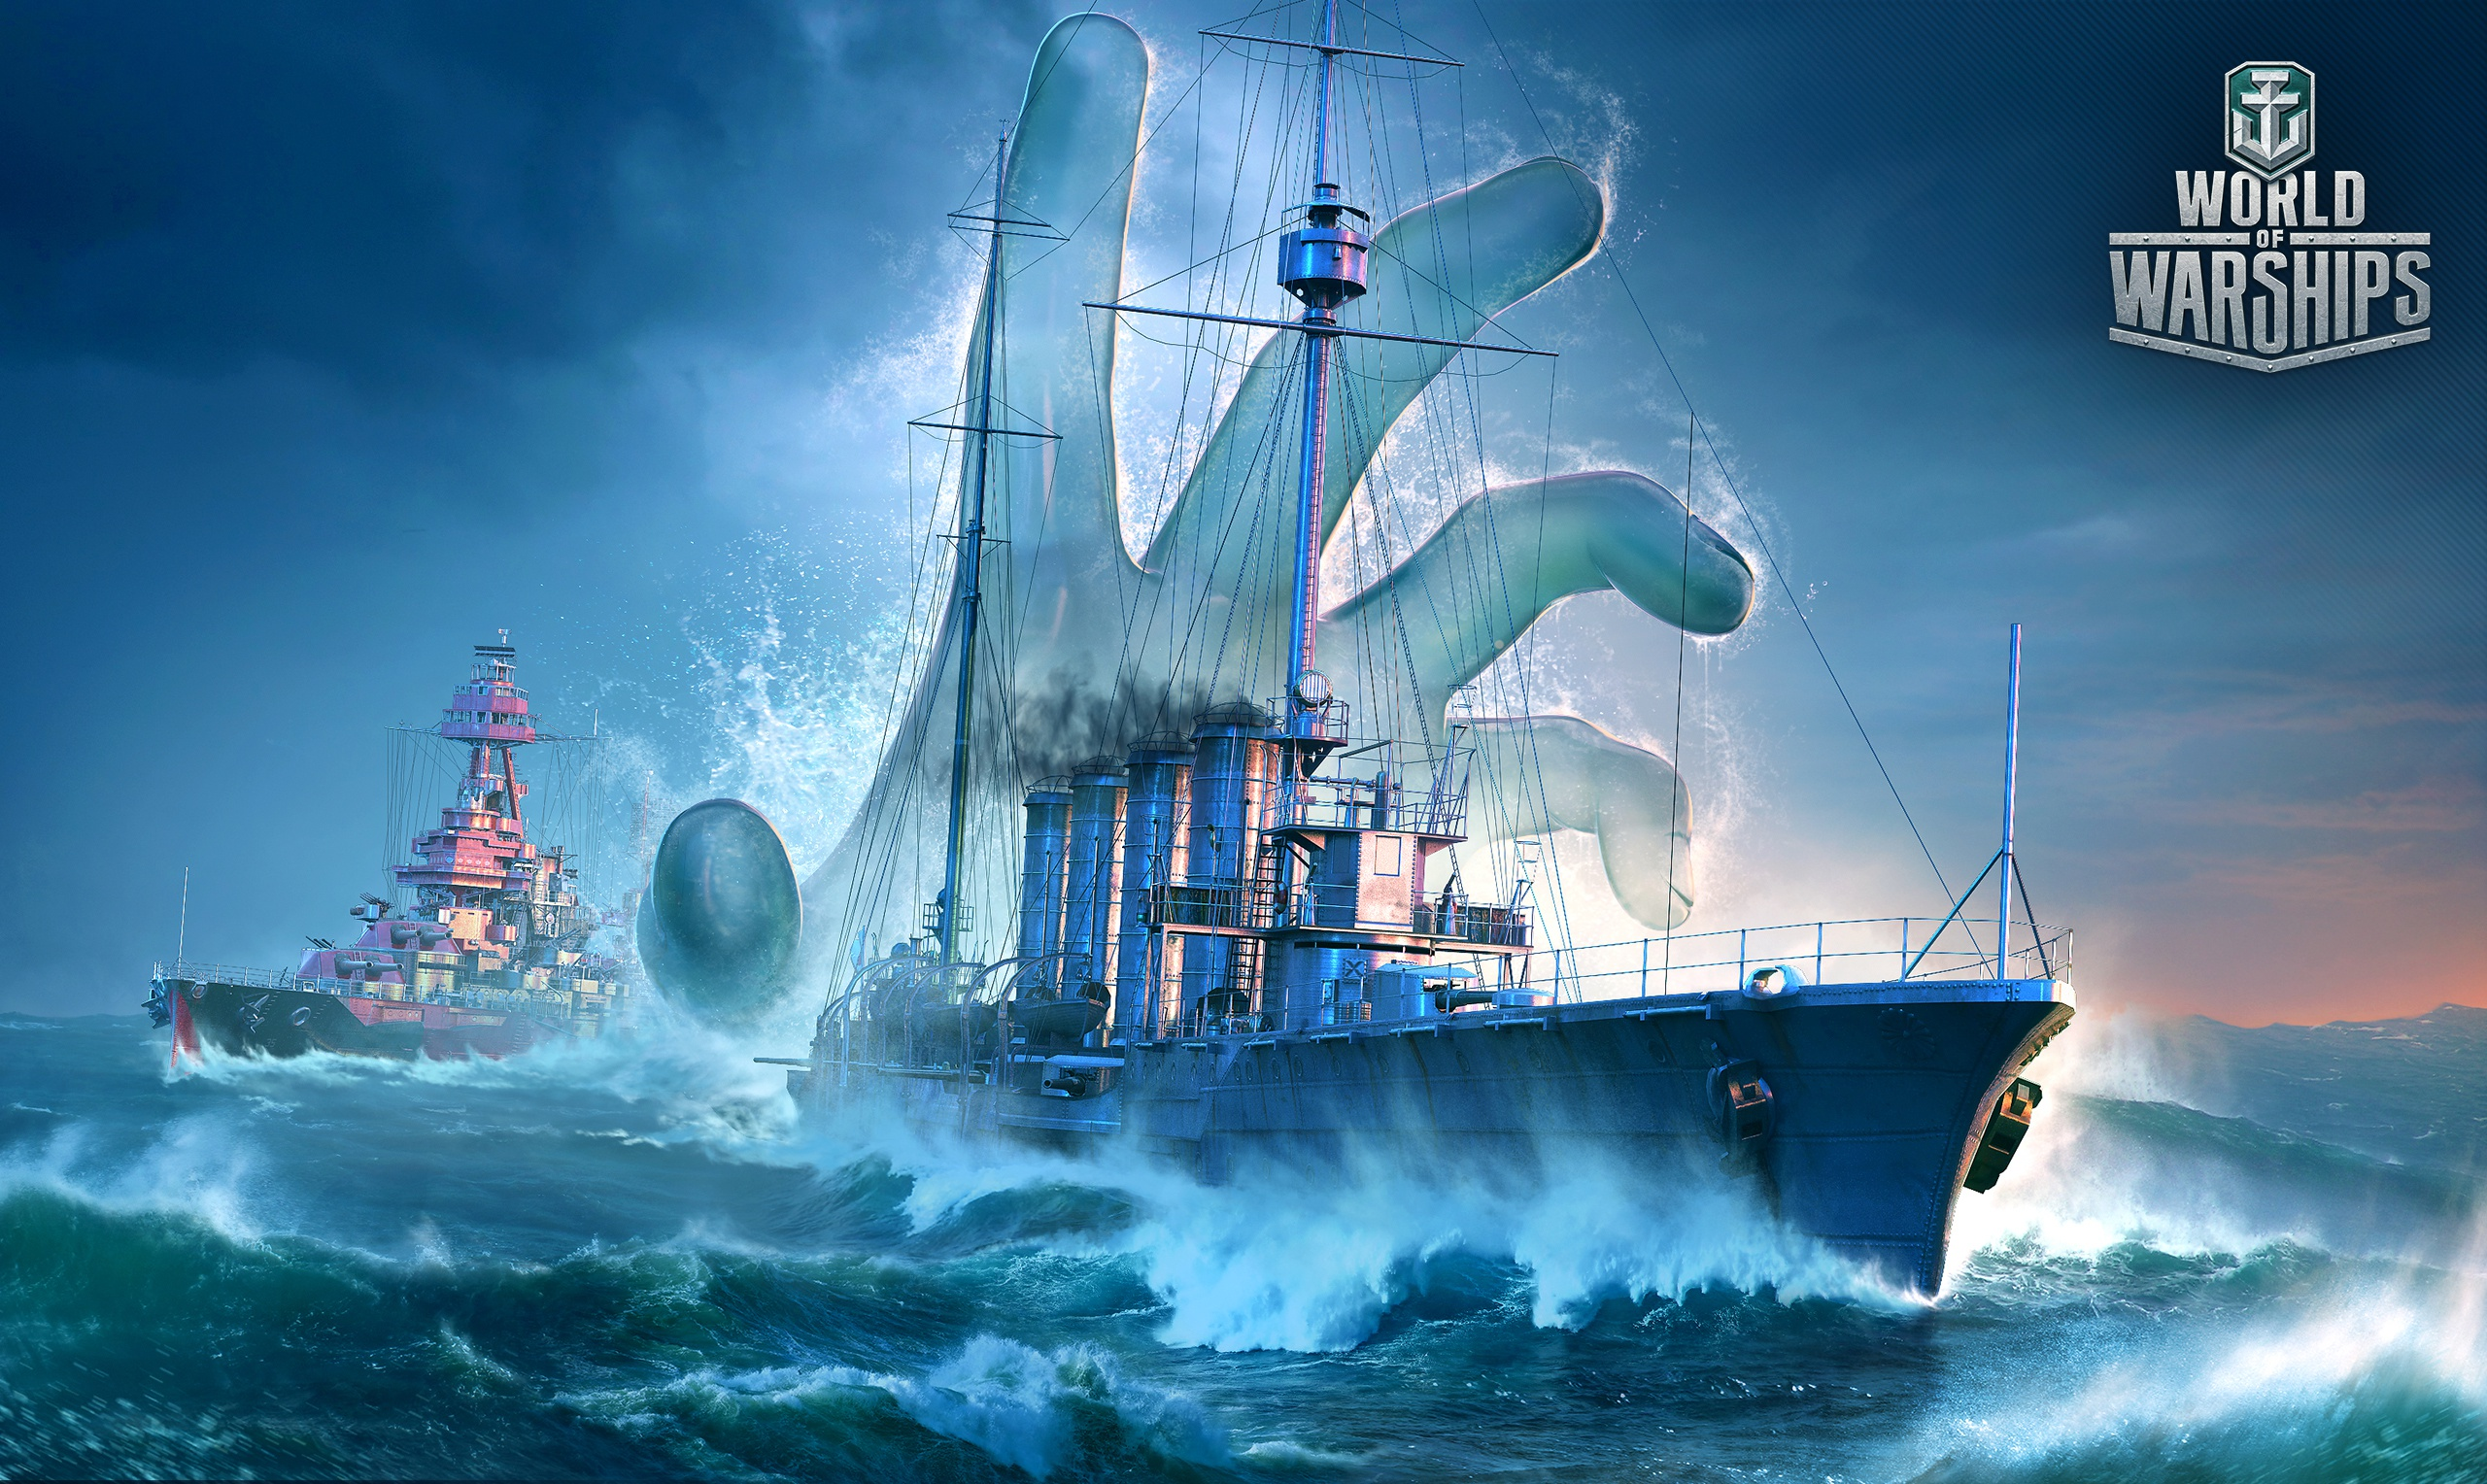 World Of Warships Hd Wallpaper Background Image 2560x1528 Id